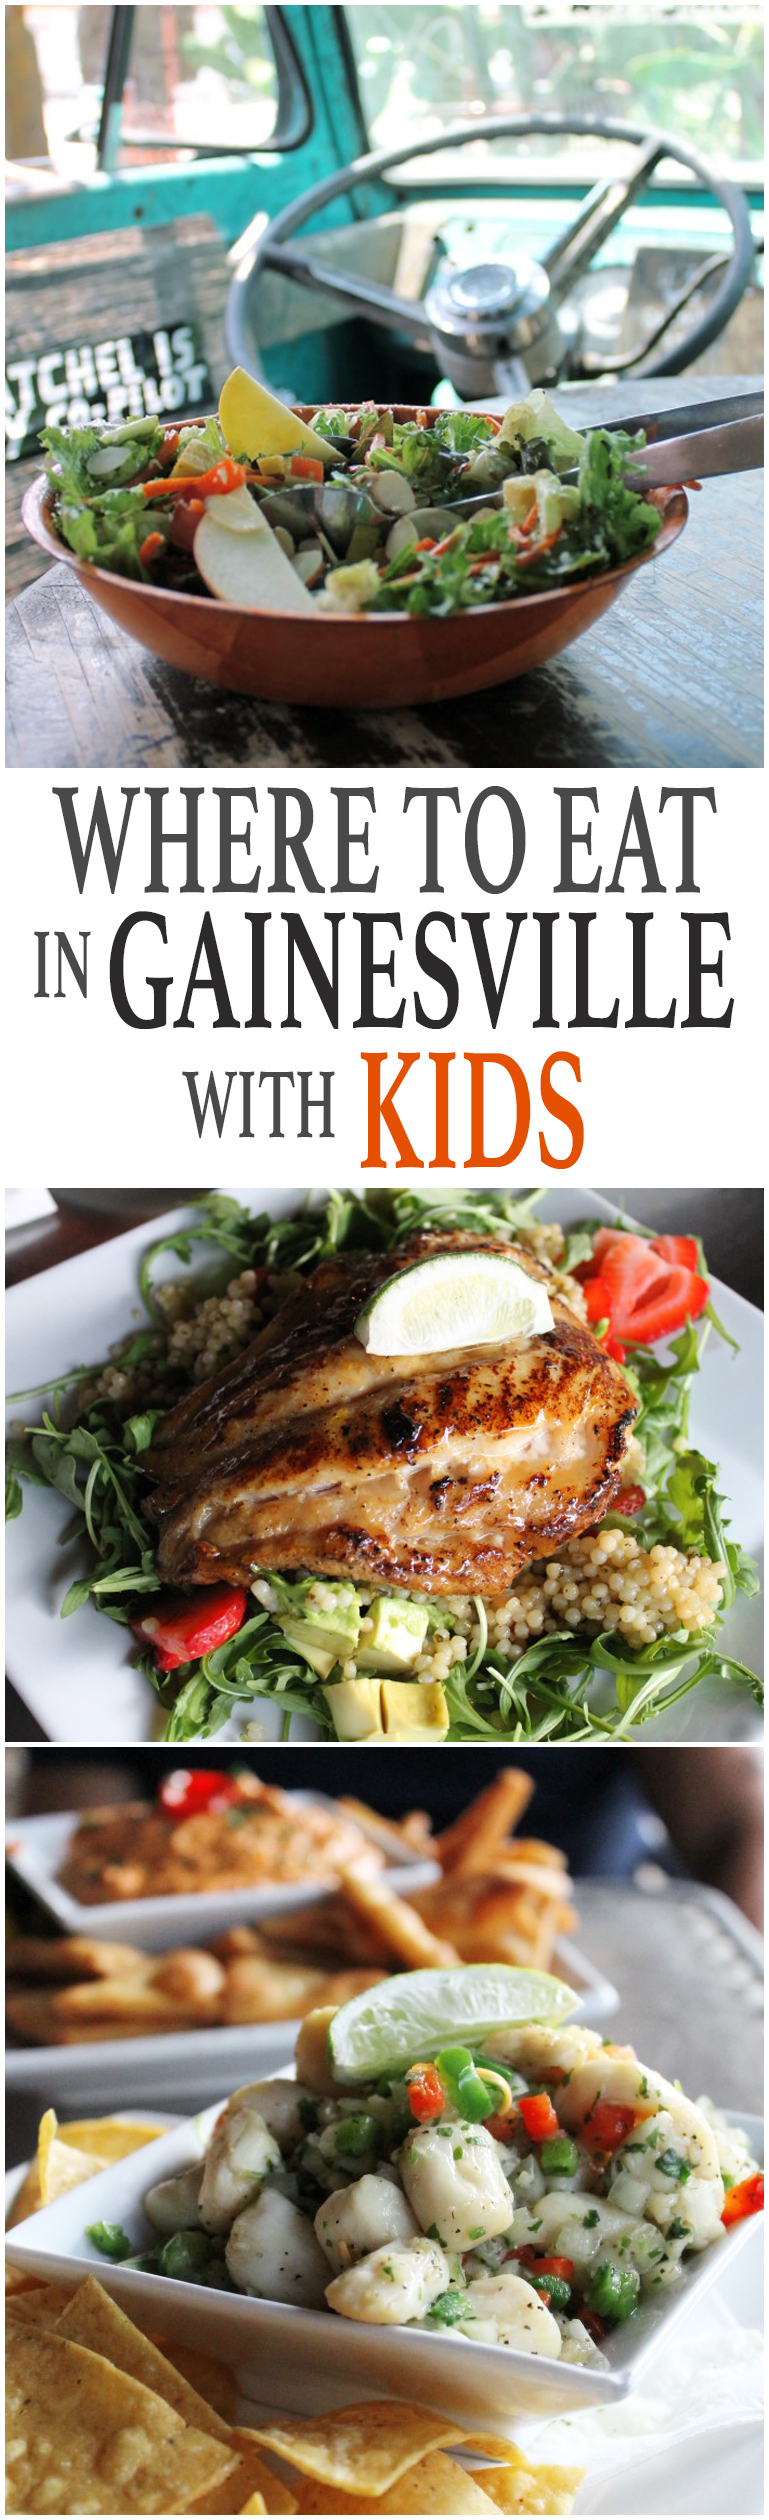 Where to eat in Gainesville with kids